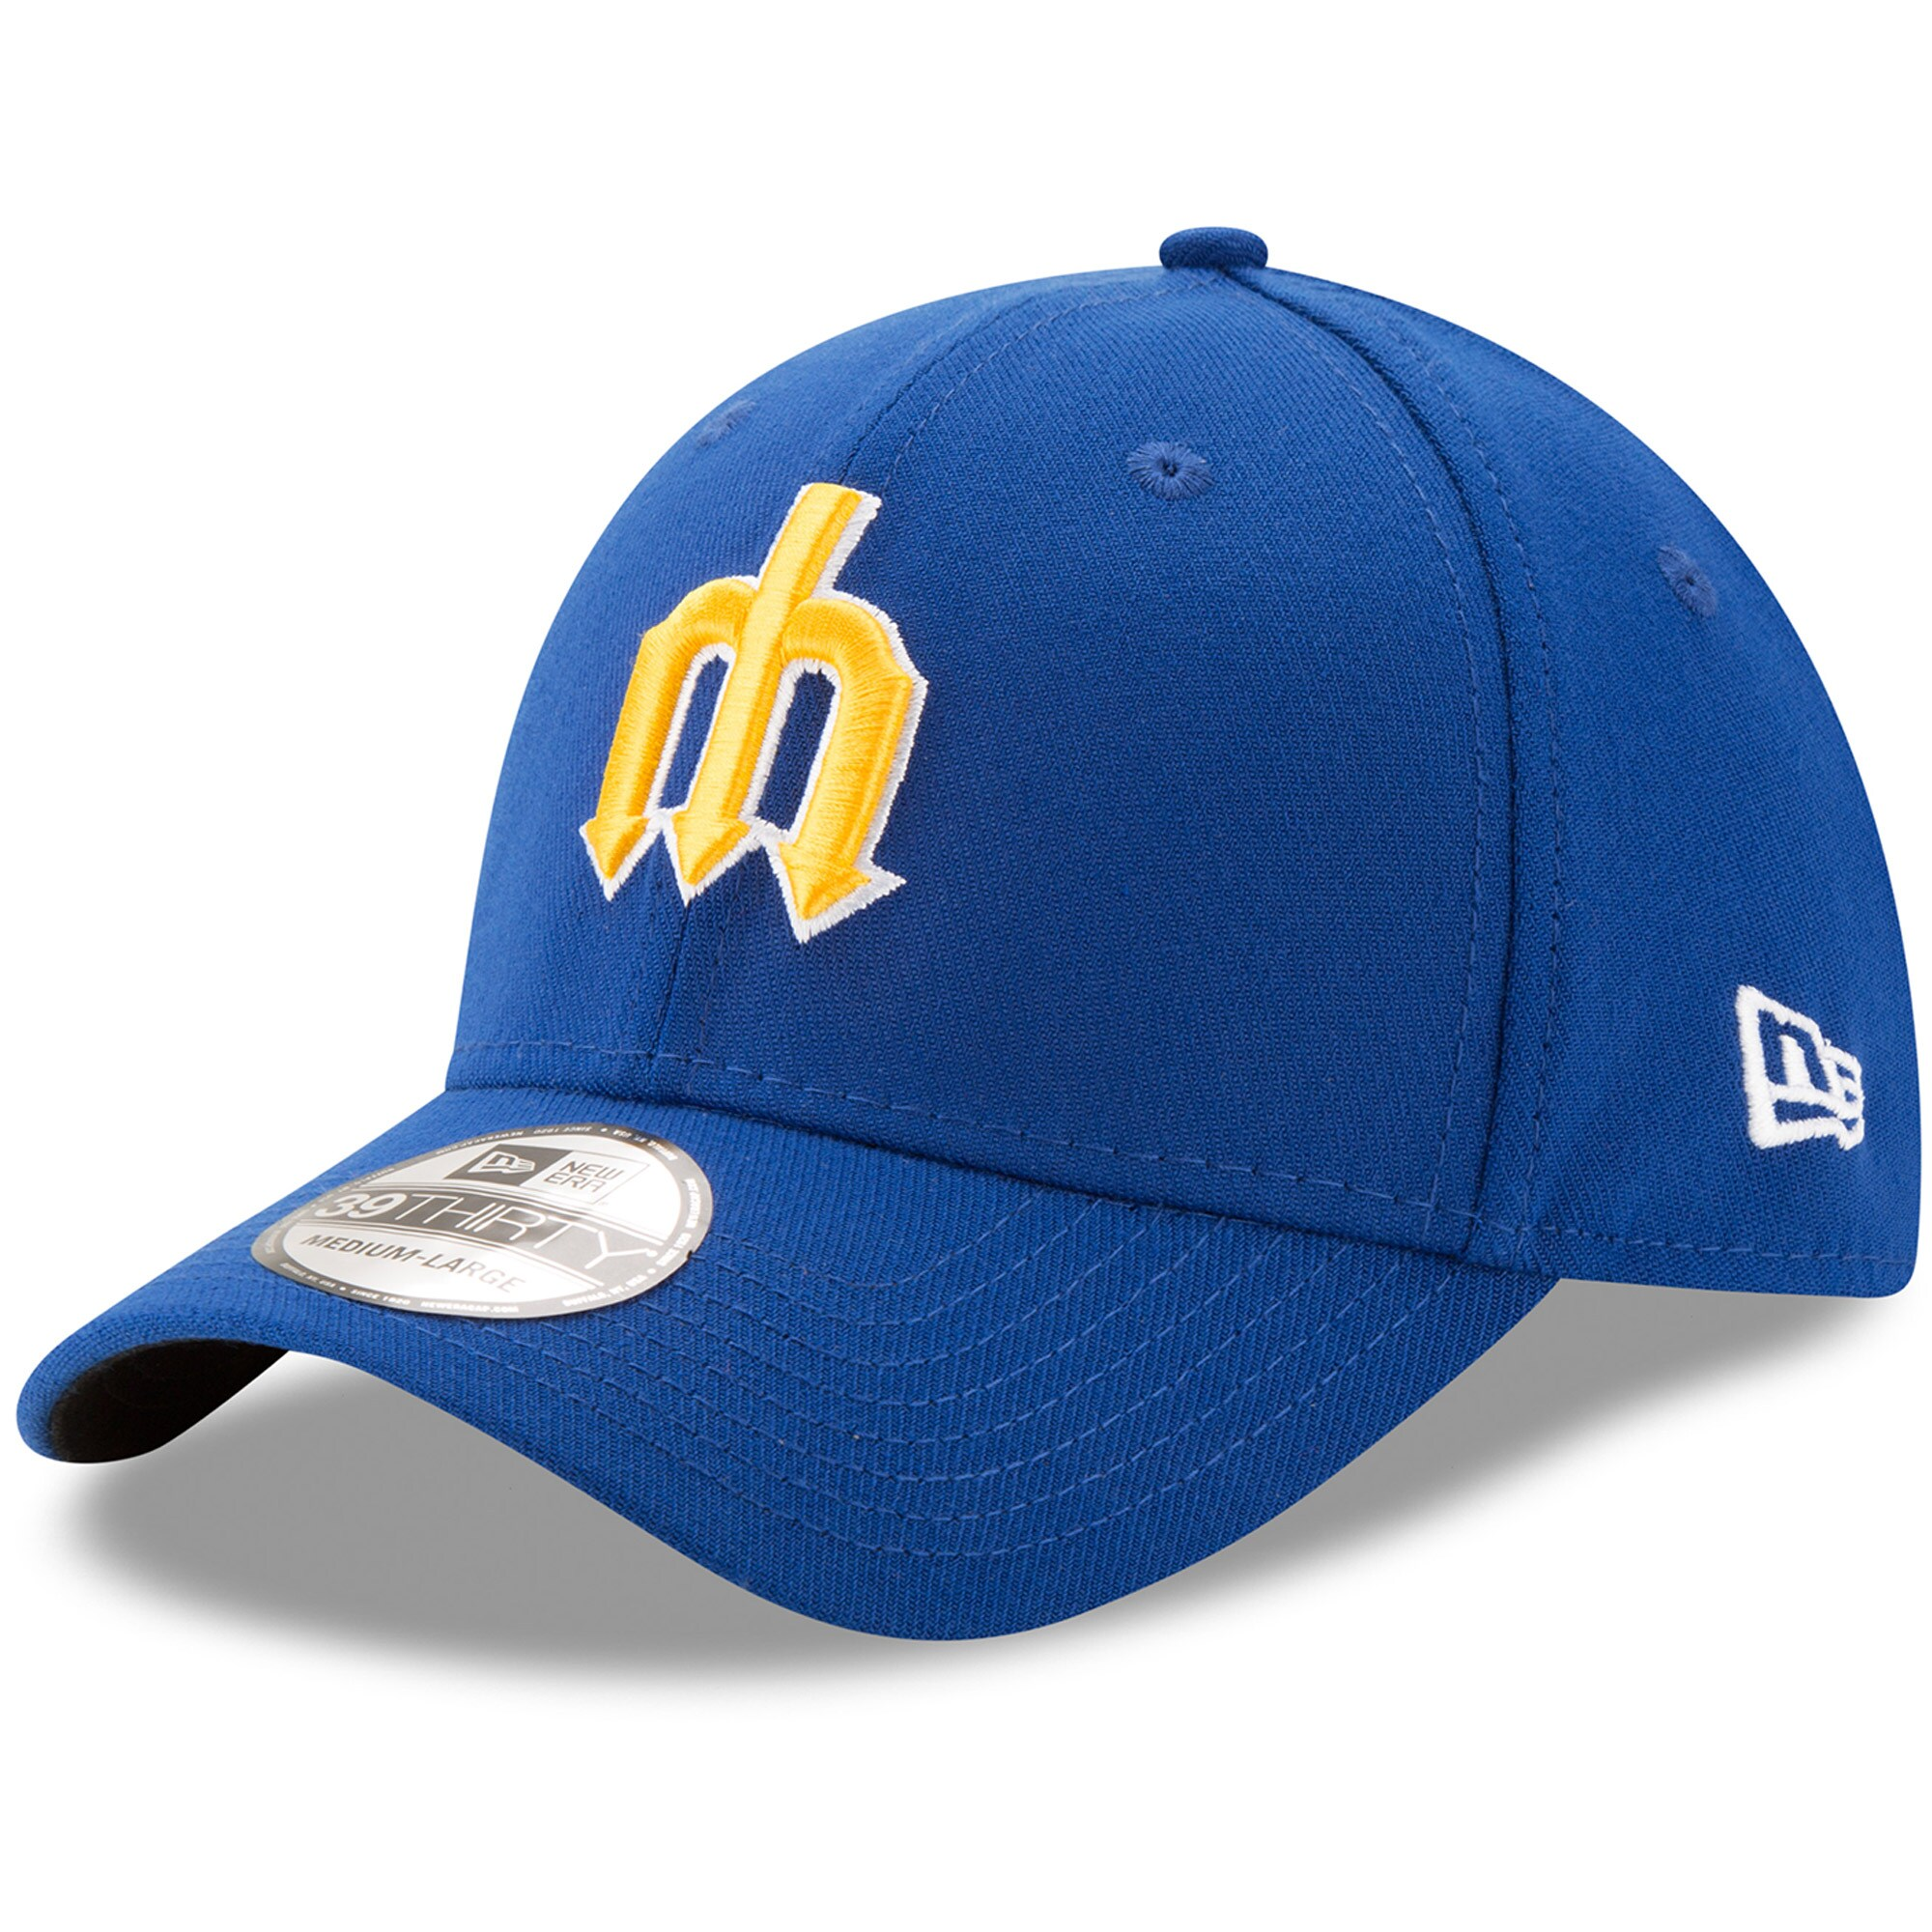 Seattle Mariners New Era Cooperstown Collection Team Classic 39THIRTY Flex Hat - Royal